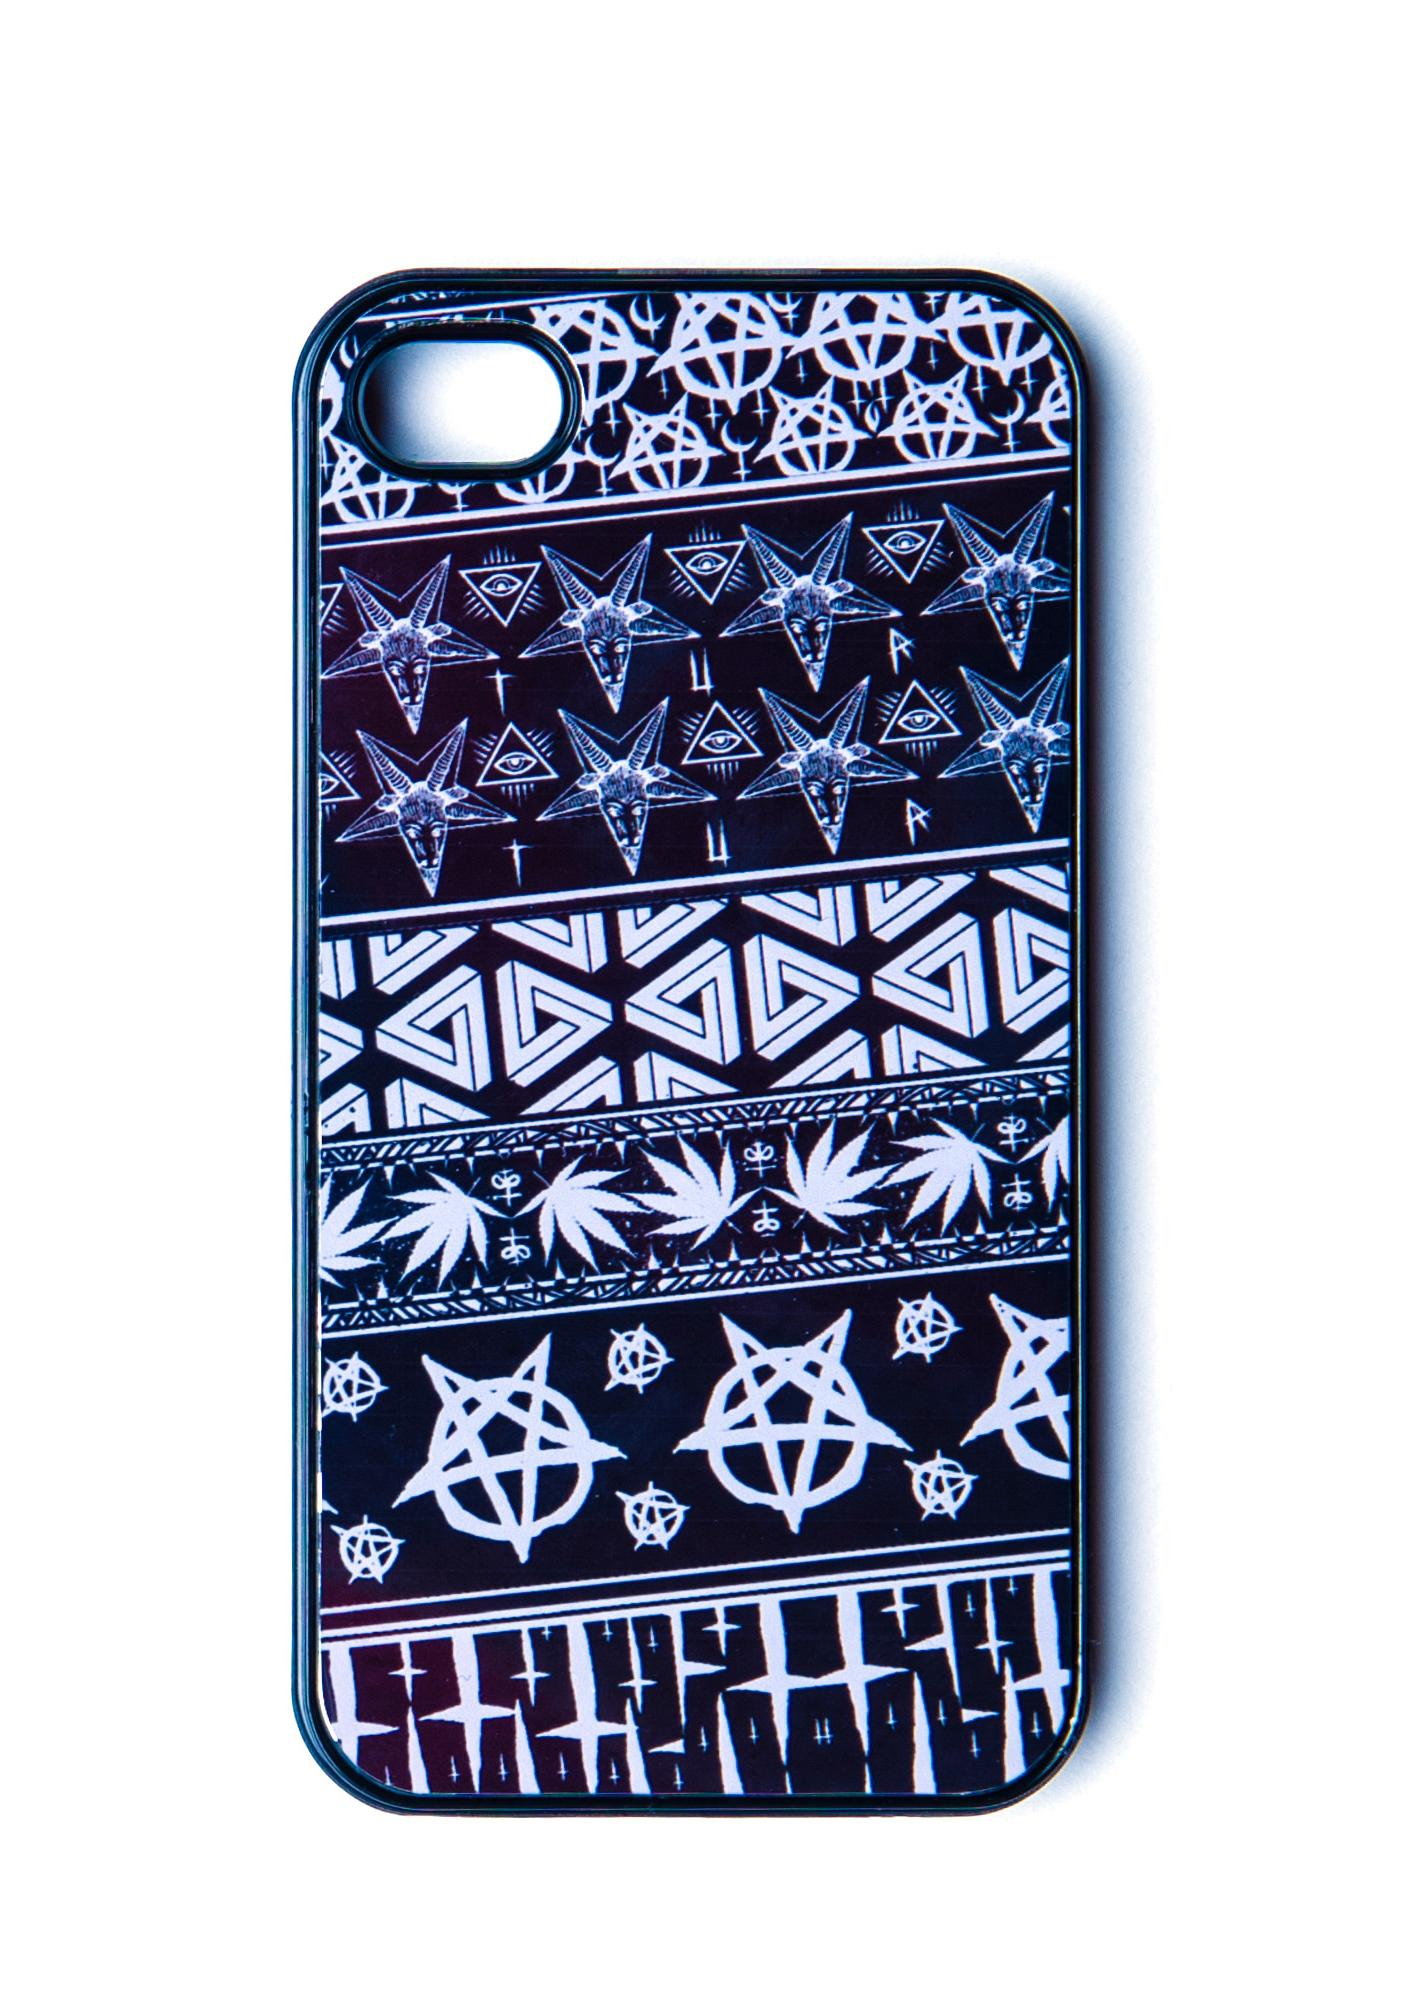 Disturbia Symbols iPhone Case